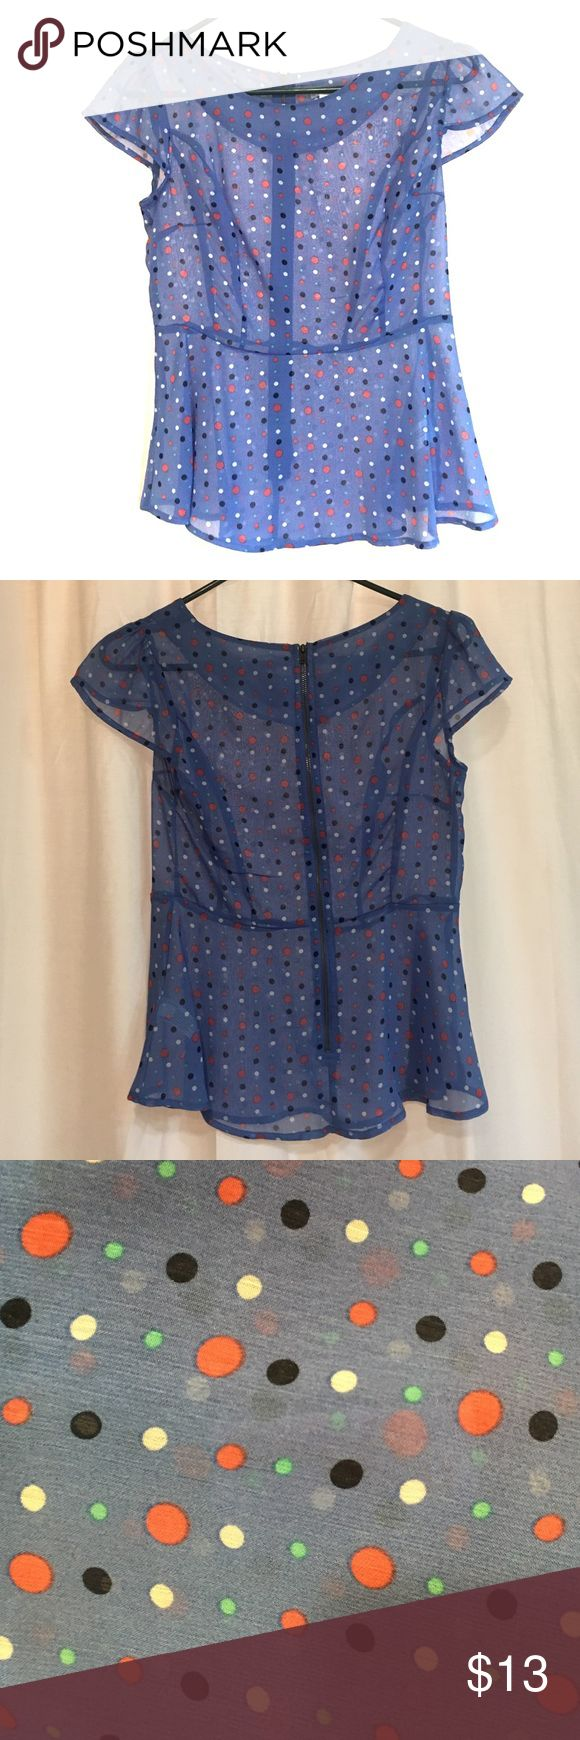 Sheer Peplum Polka Dot Top Great for work with a tank top underneath. Fits like a peplum with cap sleeves. Full zip back. Fits are white red and turquoise on blue. No trades please! Xhilaration Tops Blouses